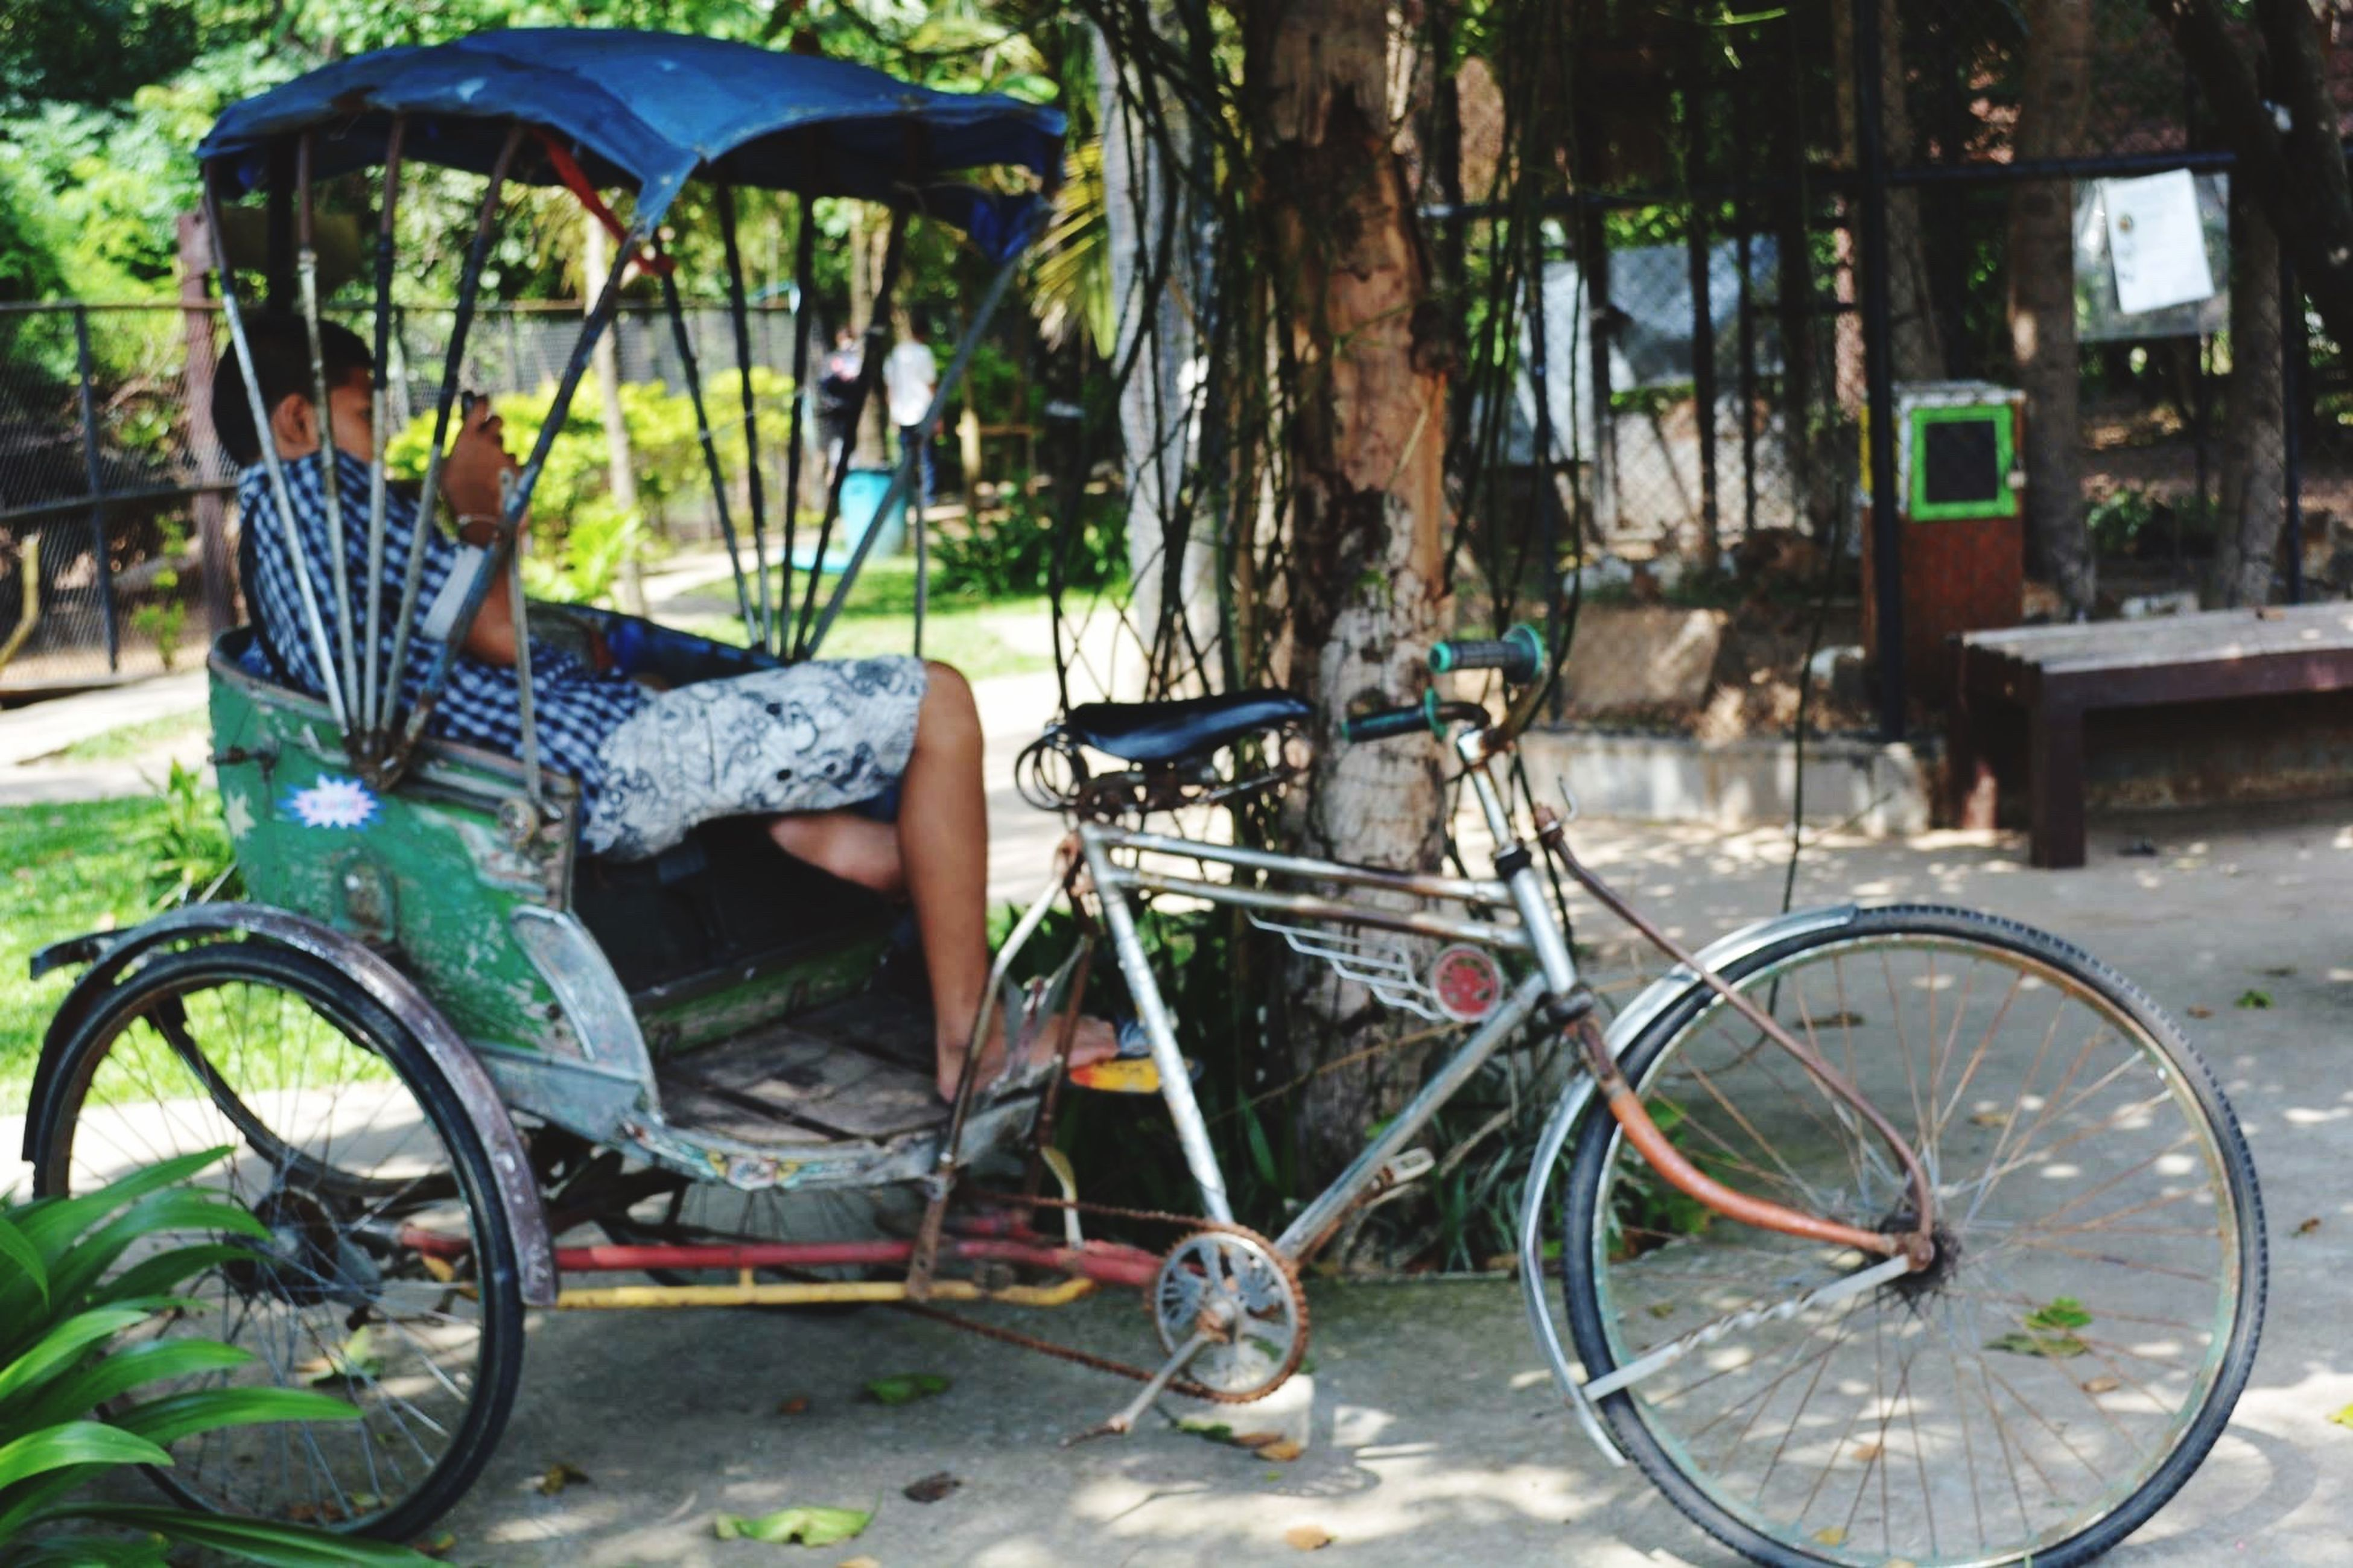 bicycle, land vehicle, transportation, real people, lifestyles, mode of transport, one person, outdoors, tree, nature, day, young adult, low section, people